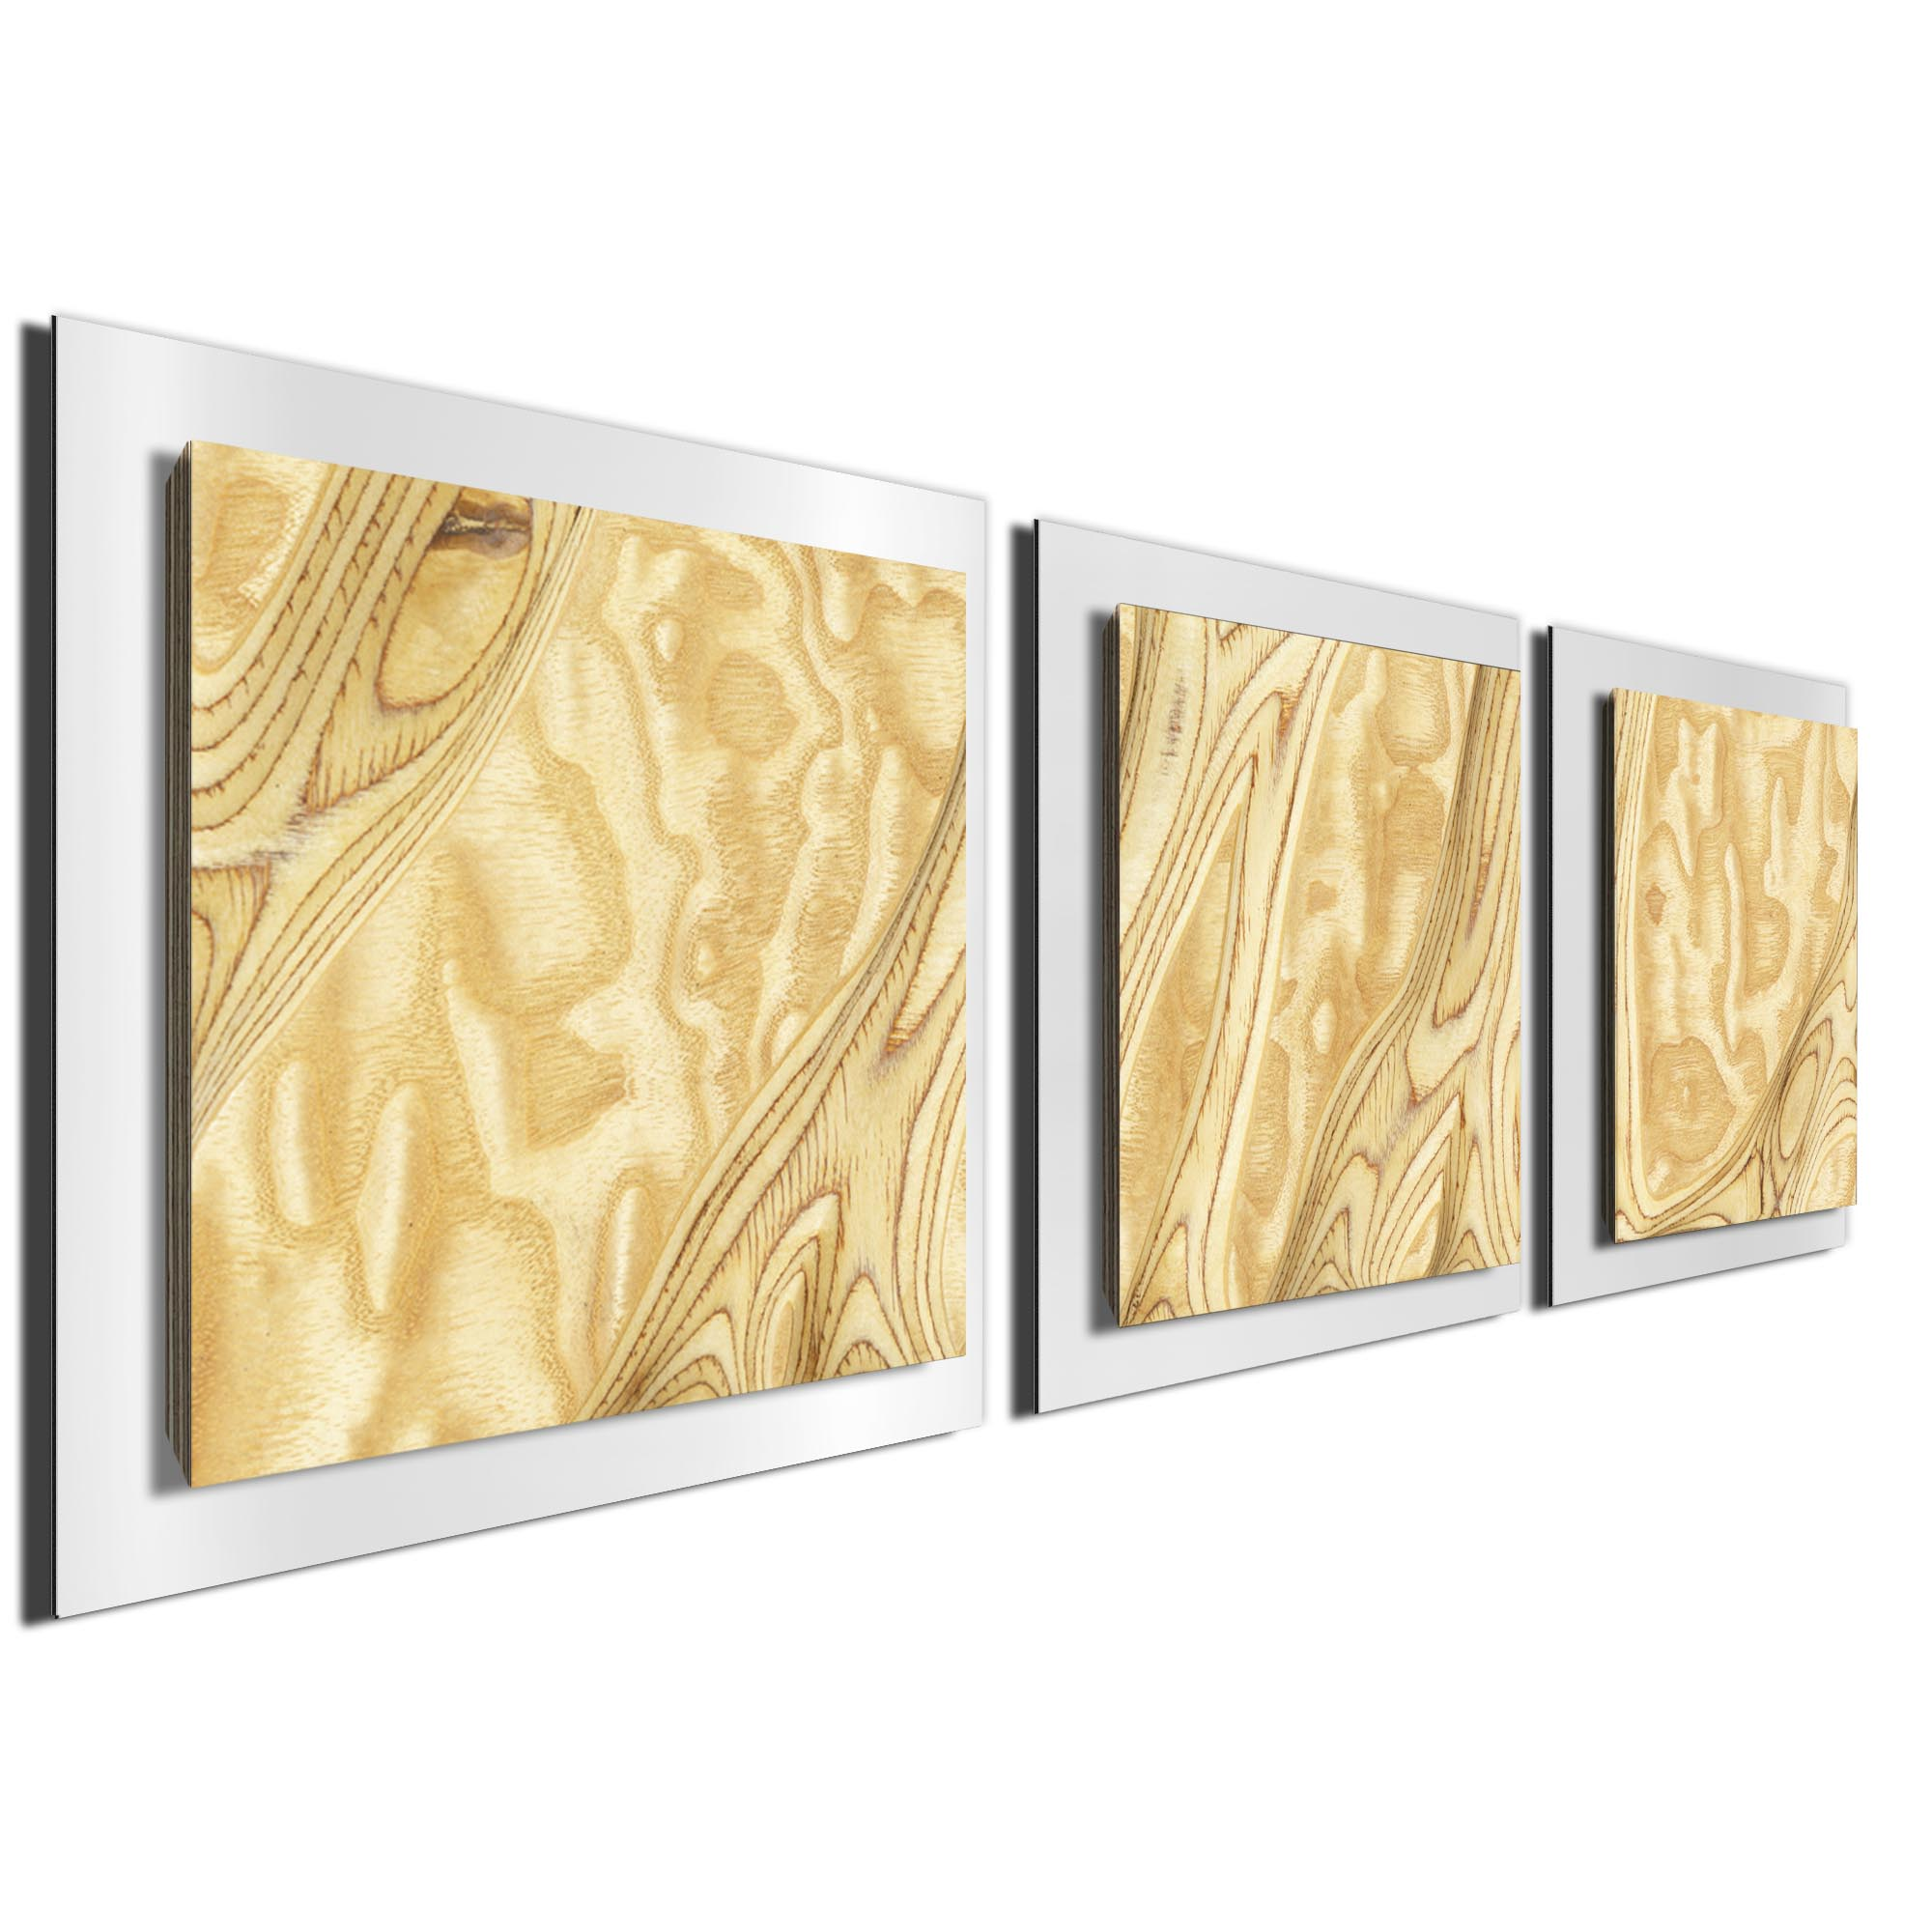 Natural Burl Essence White by Jackson Wright Rustic Modern Style Wood Wall Art - Image 2